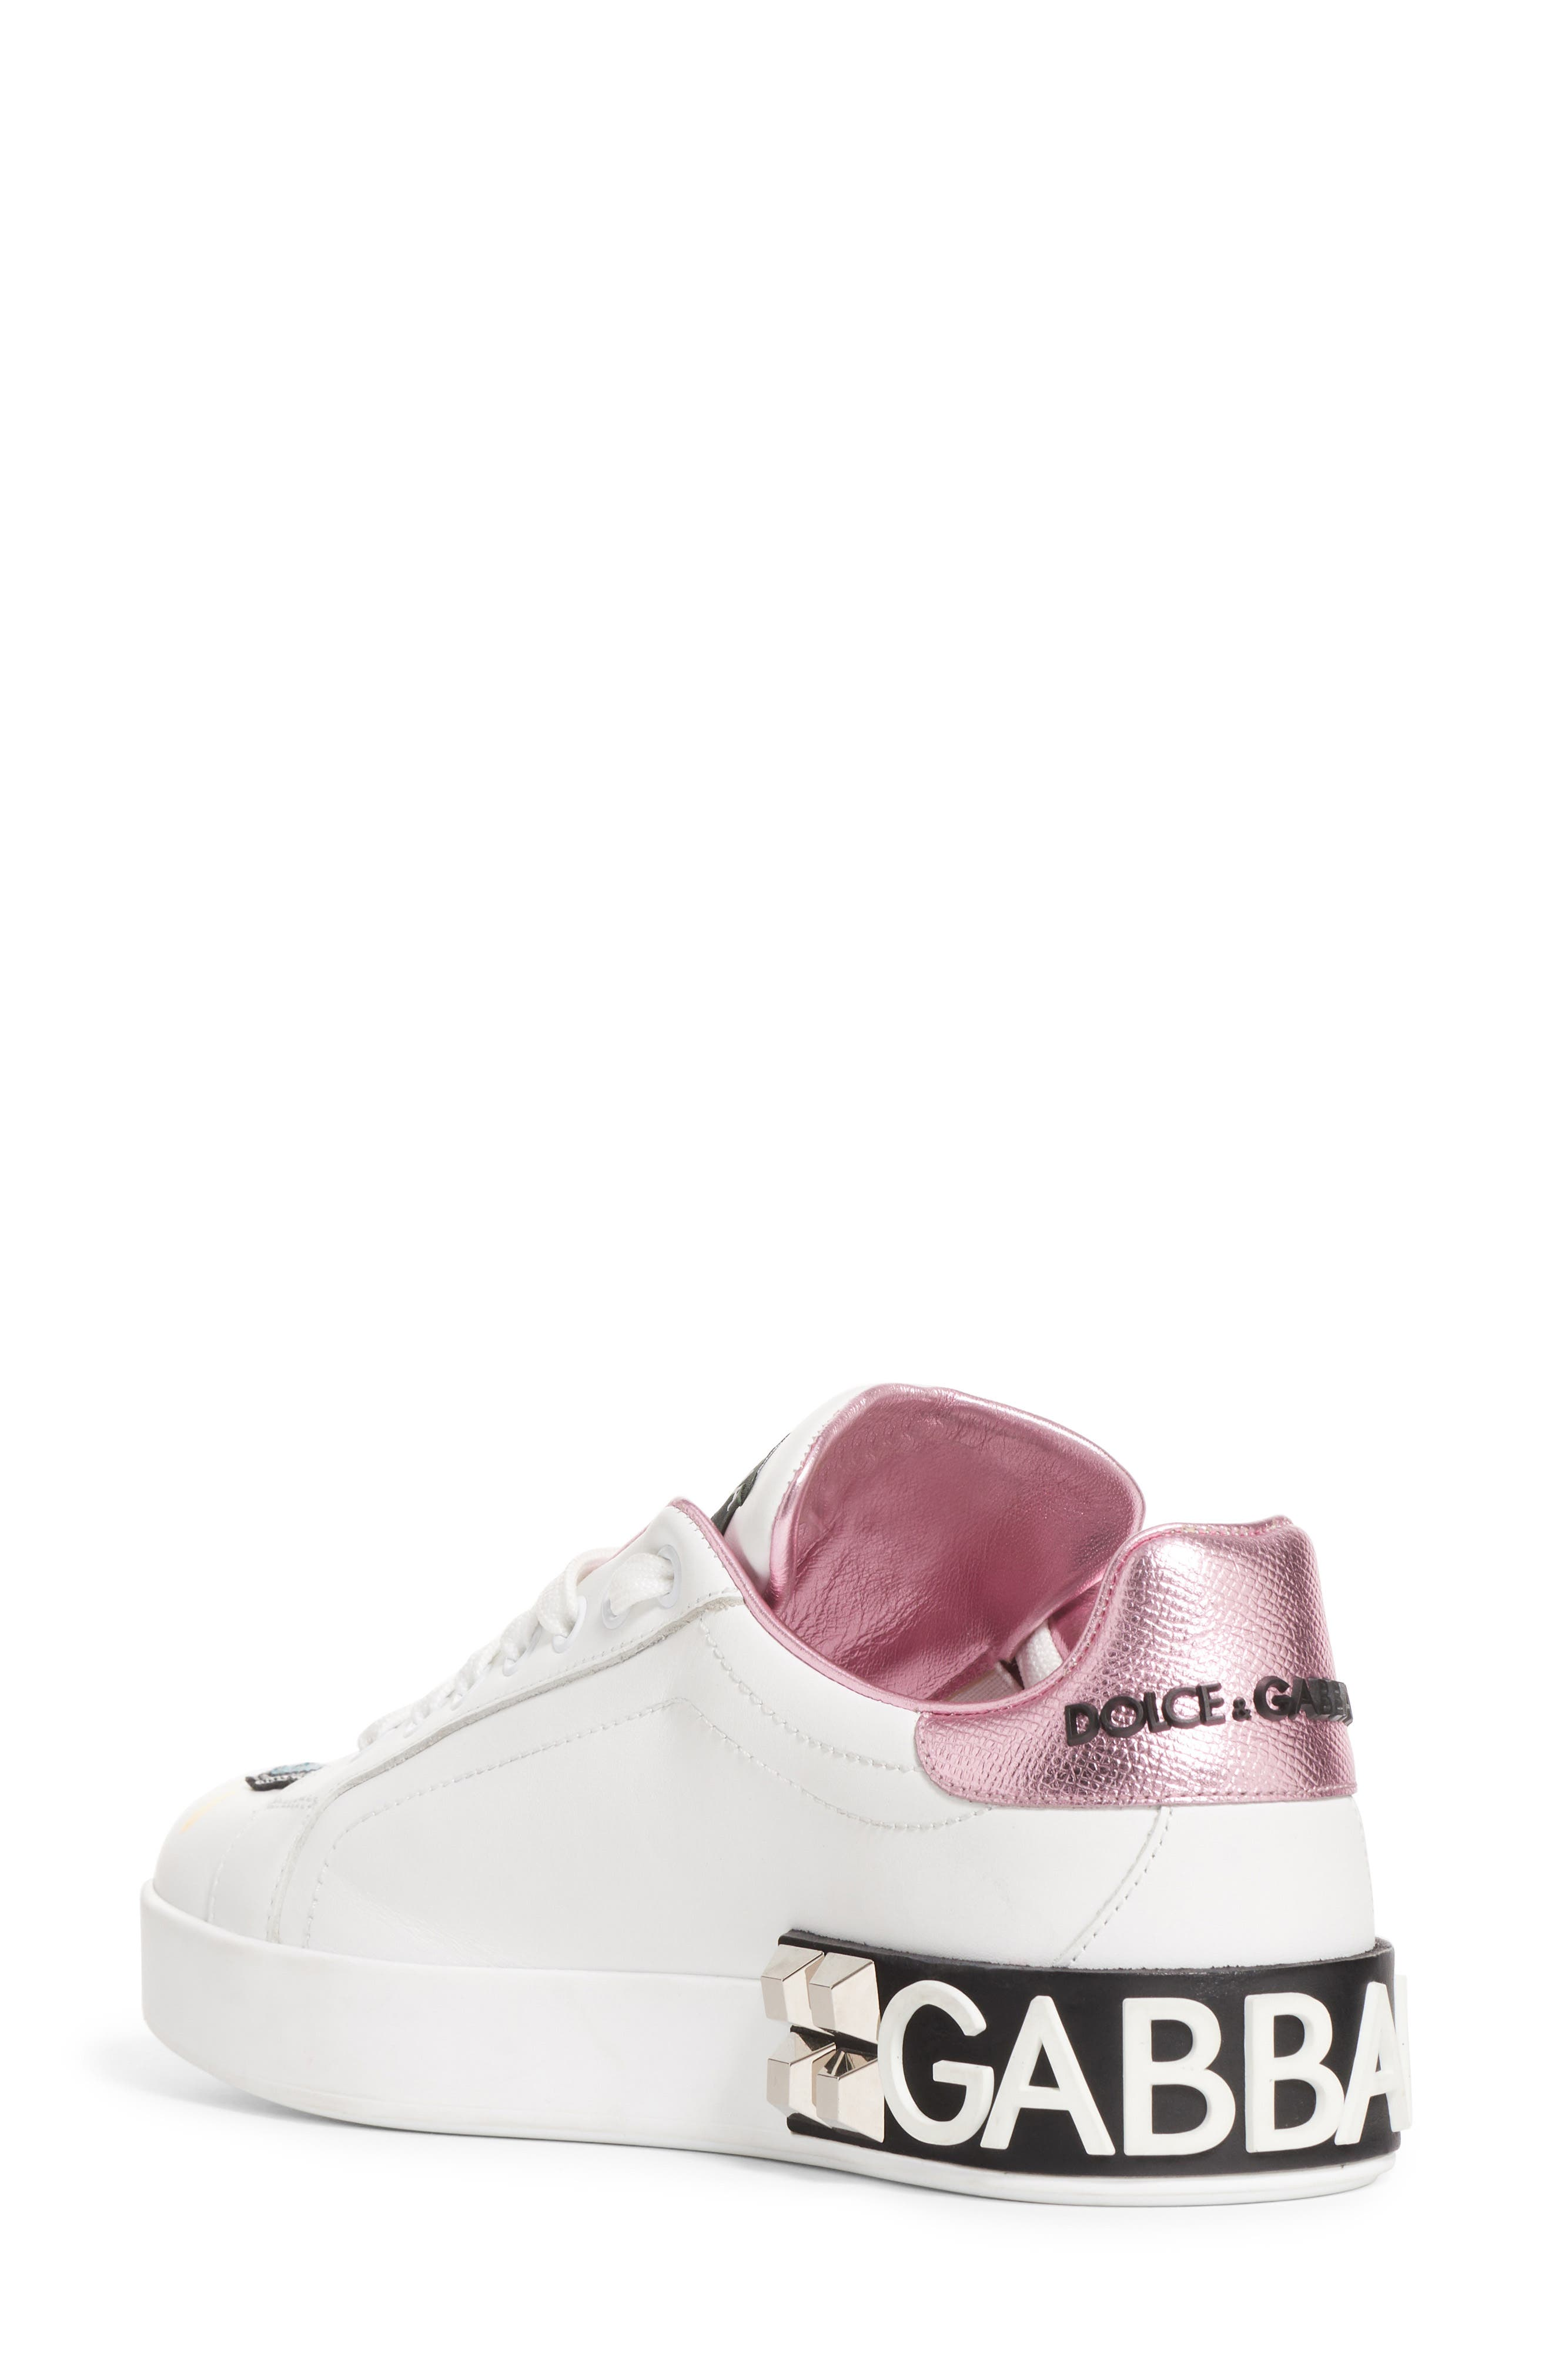 DOLCE&GABBANA, Queen Graffiti Lace-Up Sneaker, Alternate thumbnail 2, color, 110